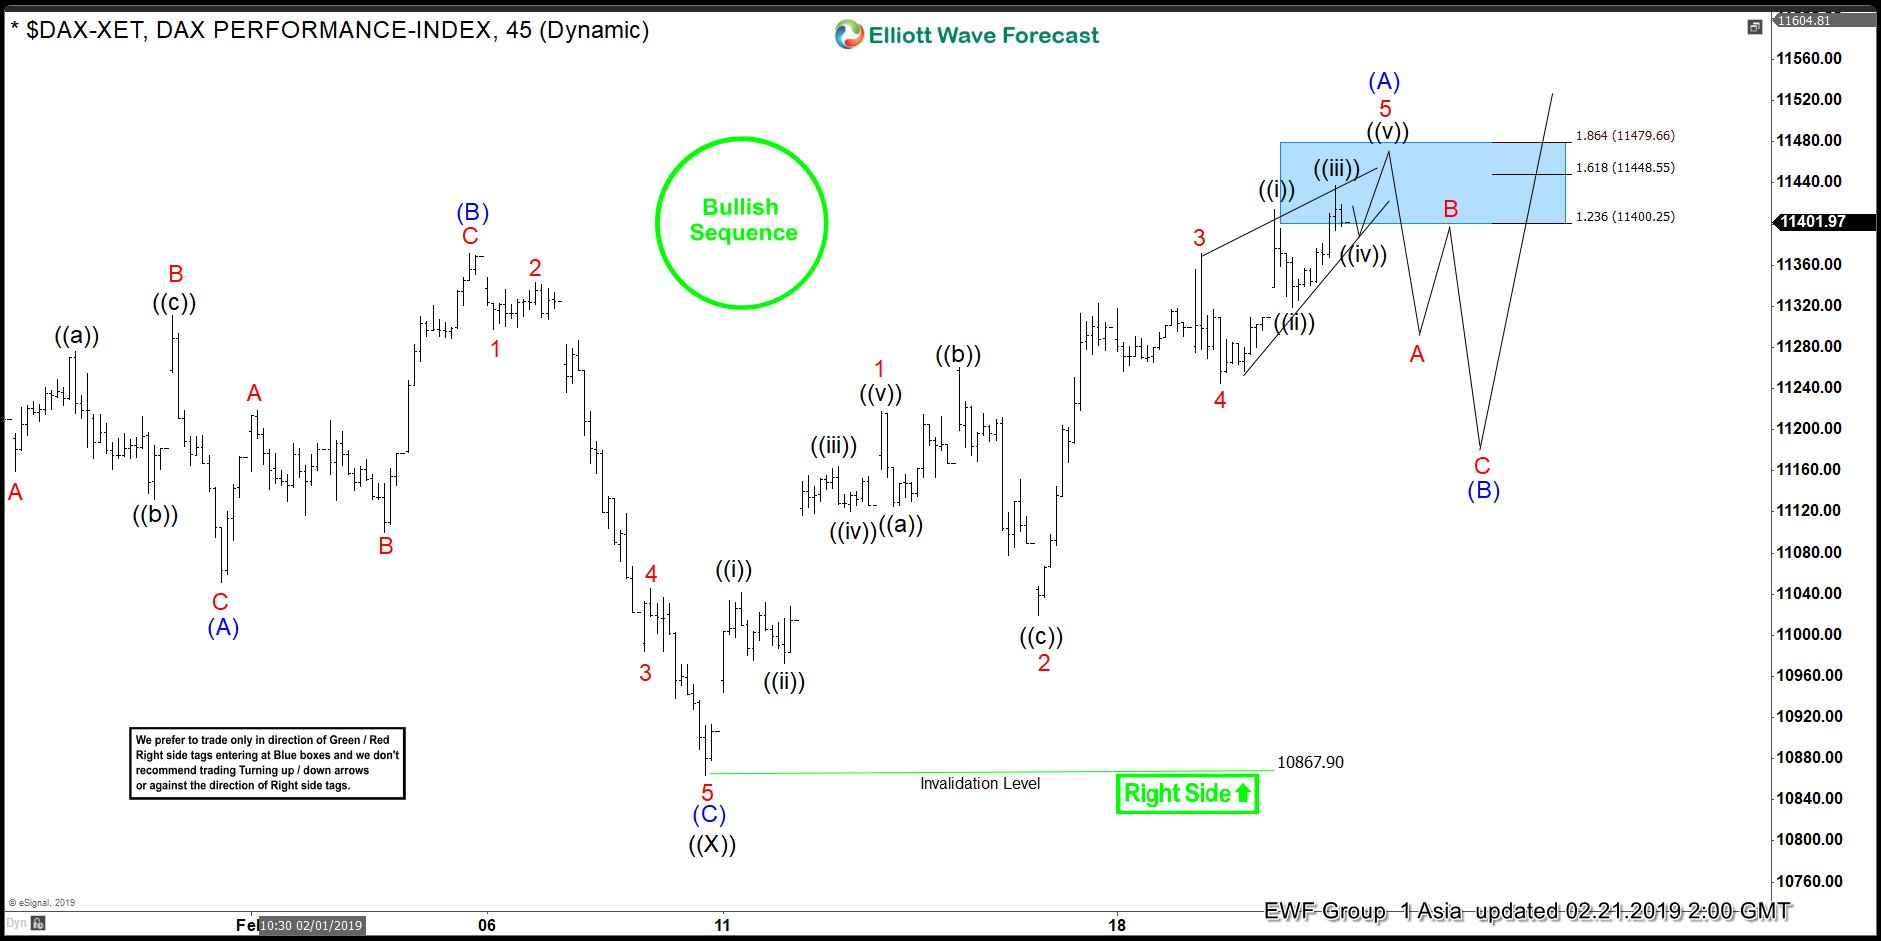 DAX Elliott Wave sequence favors more upside